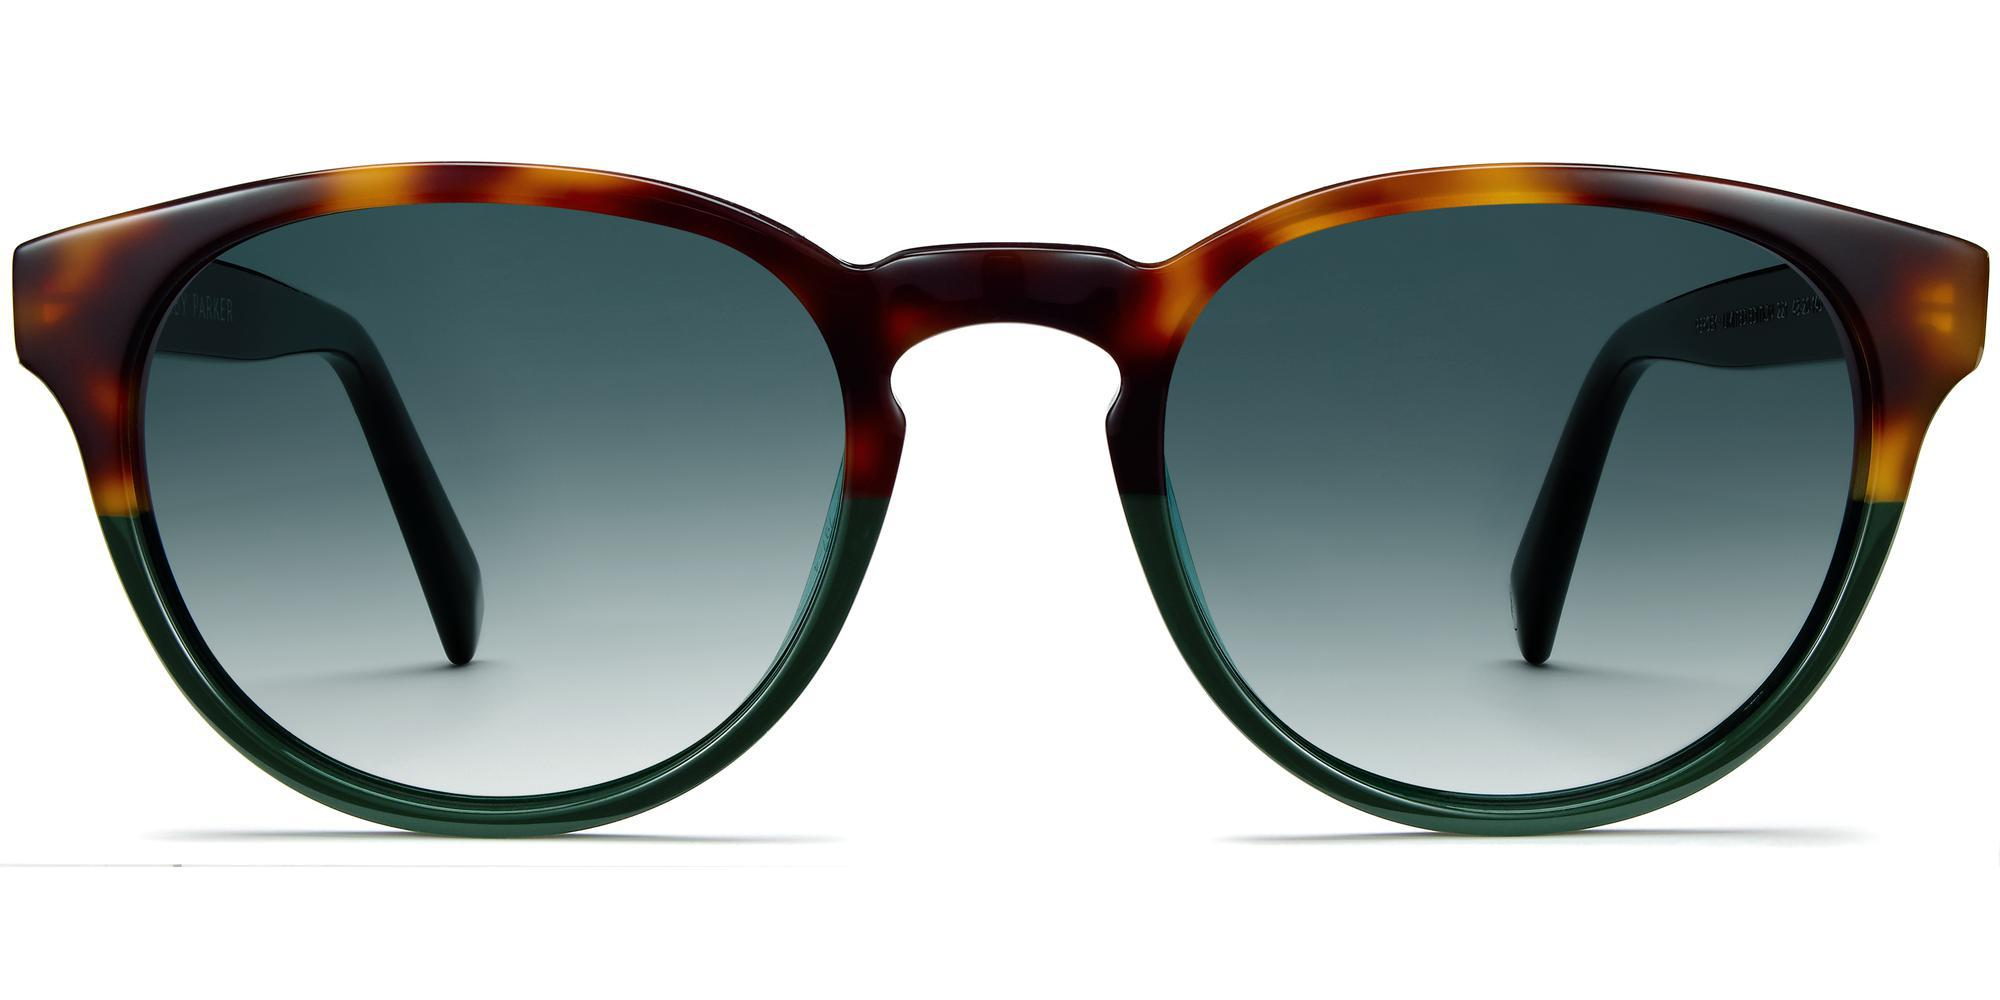 4261efa546b56 ... Fade Source · Warby Parker Percey Holiday Sunglasses for Men Lyst